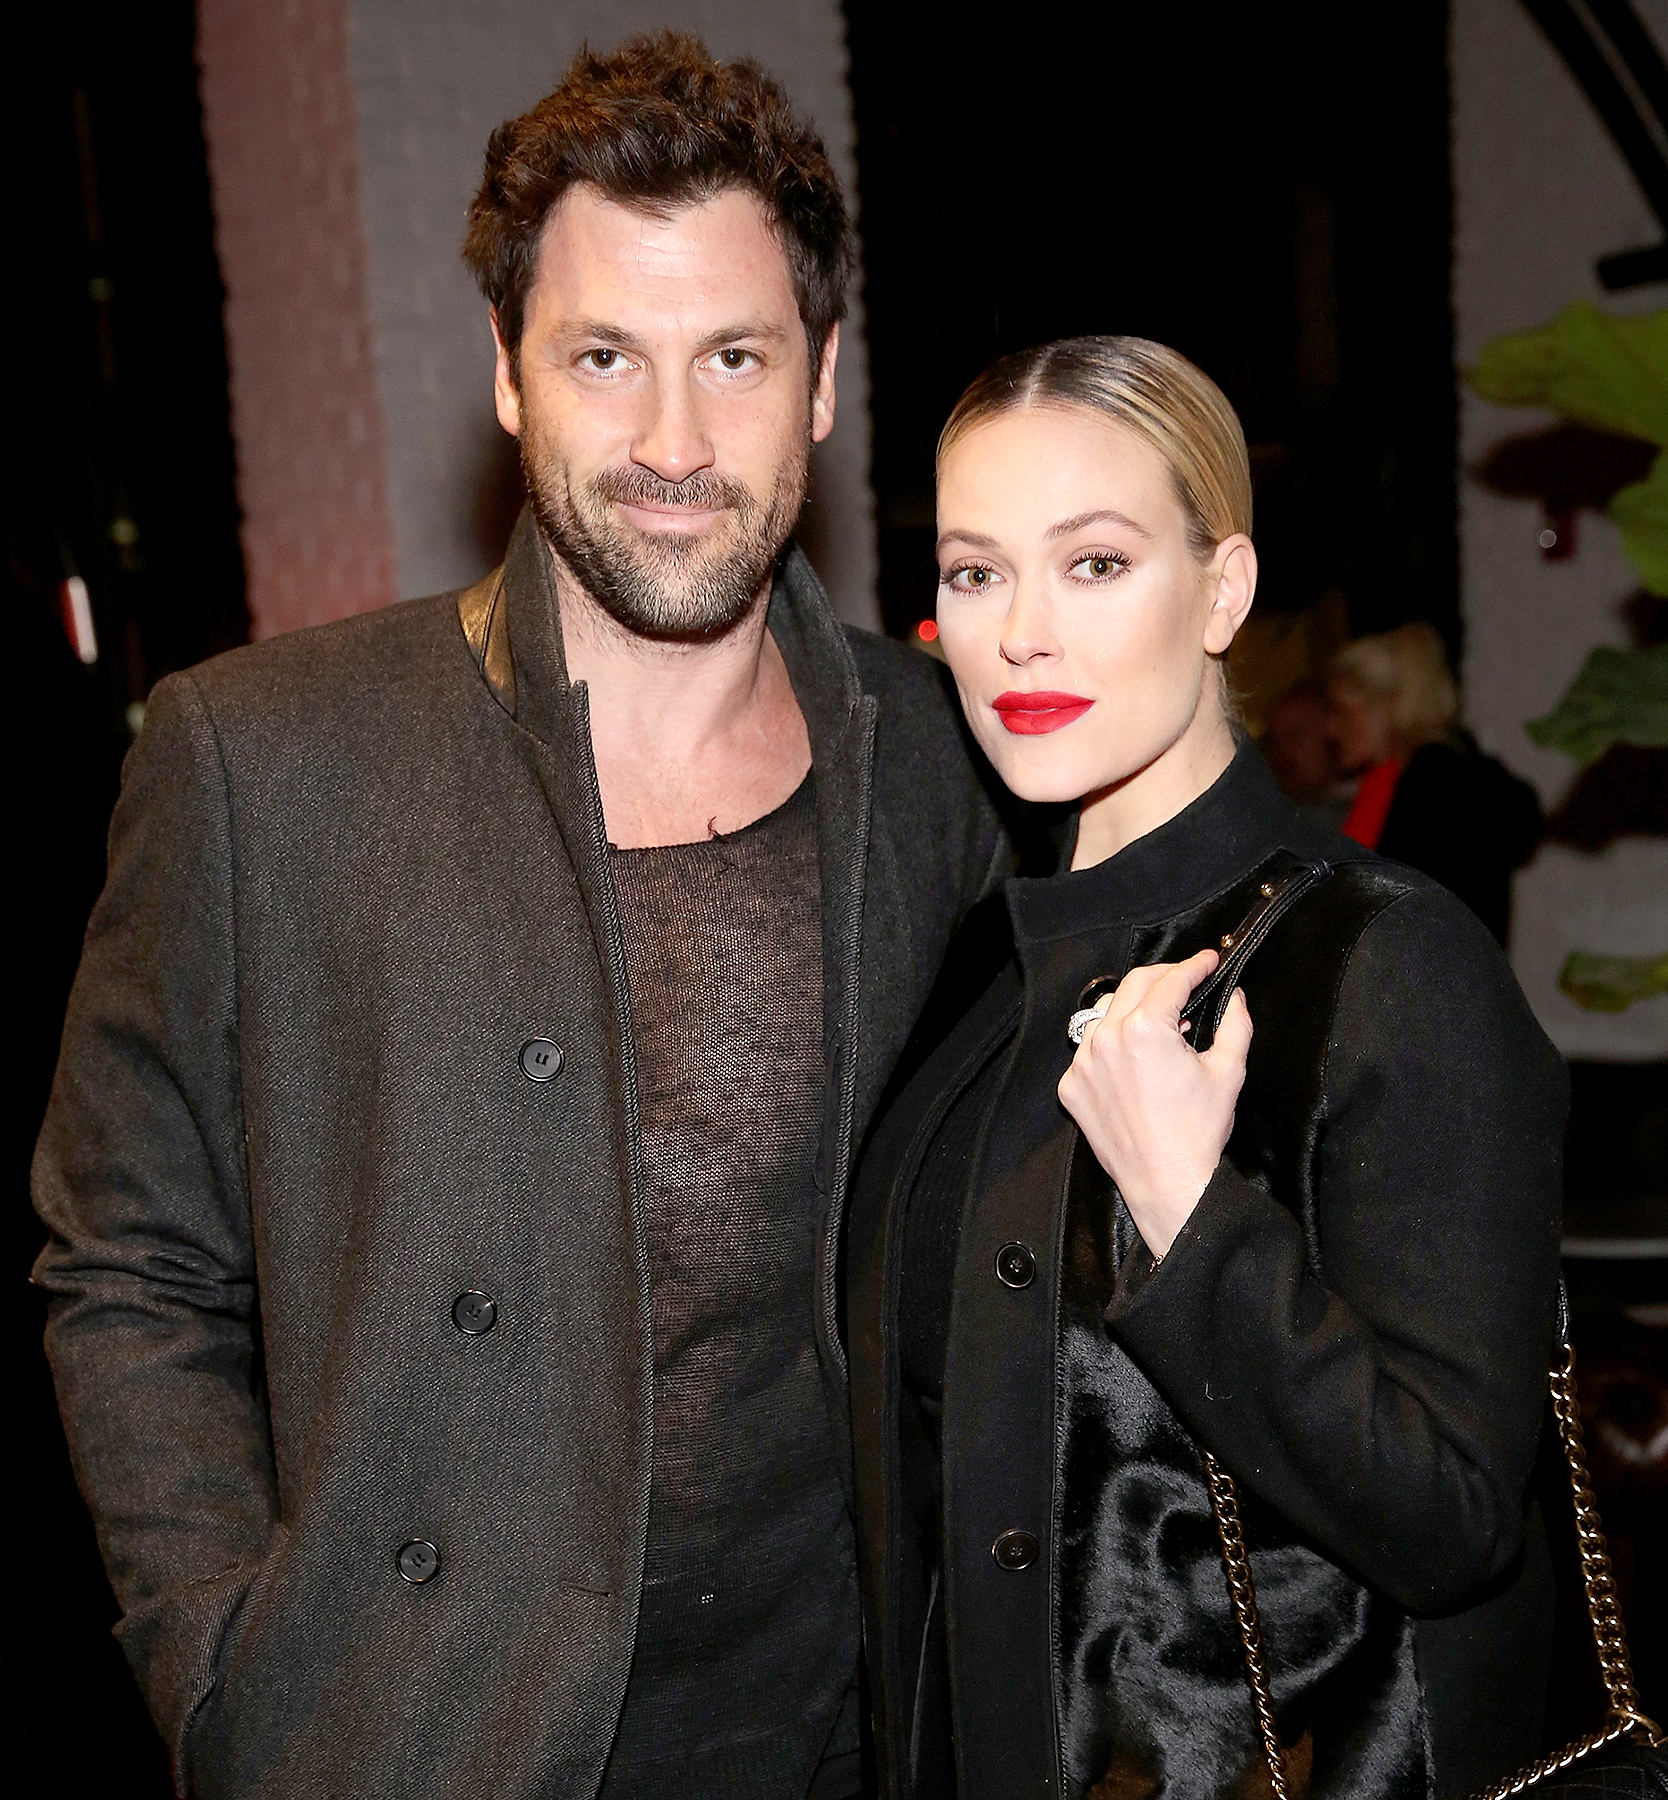 Maksim Chmerkovskiy and Peta Murgatroyd attend the VALENTINNICOLE fashion show during New York Fashion Week at Lovage on February 9, 2017 in New York City.